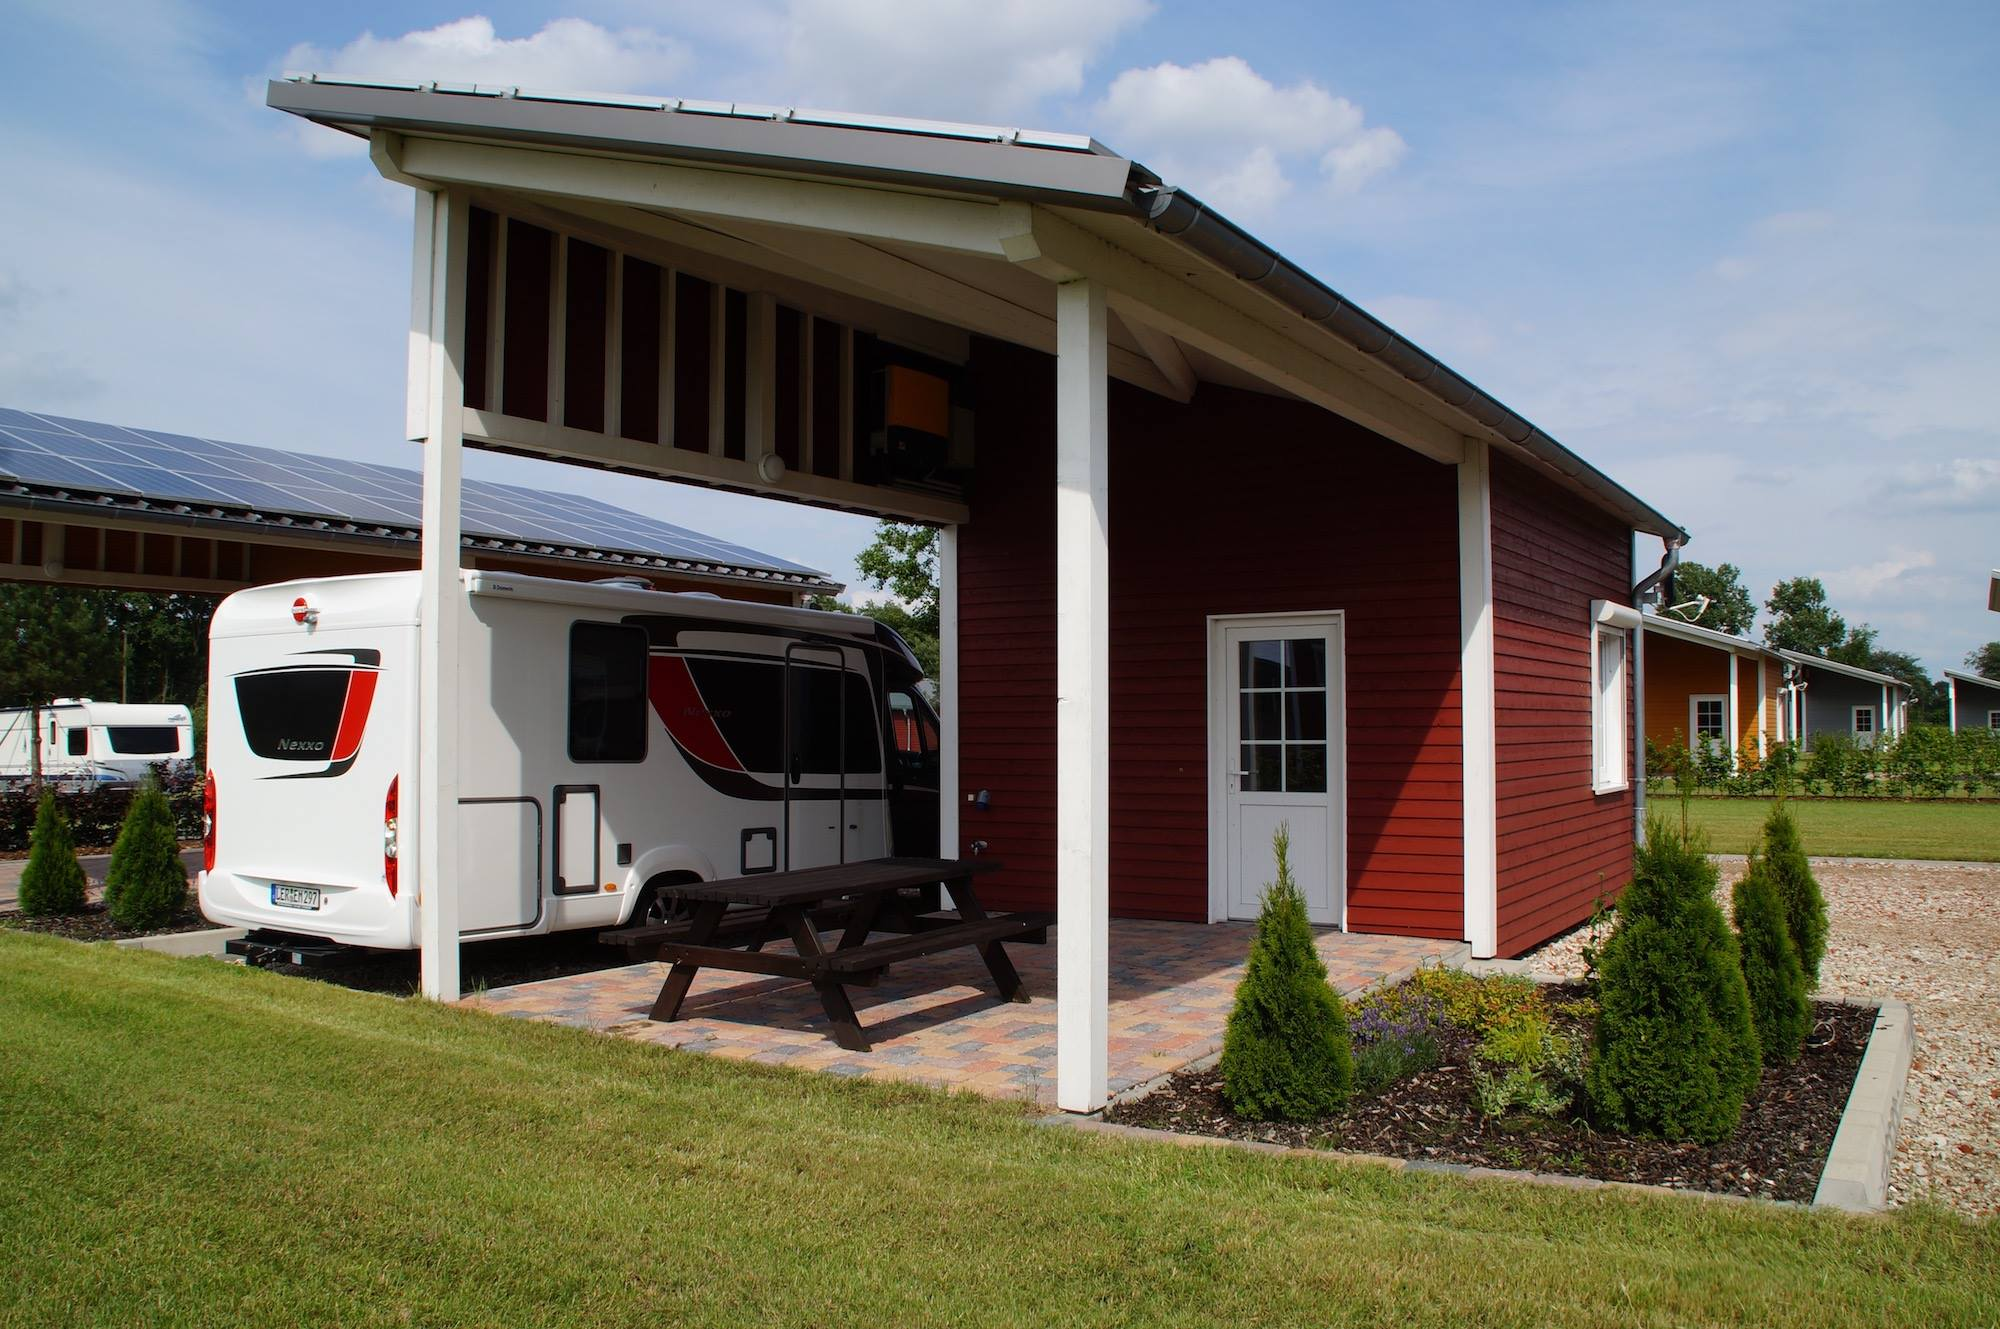 Overnight Lodging - EMSLAND-CAMP